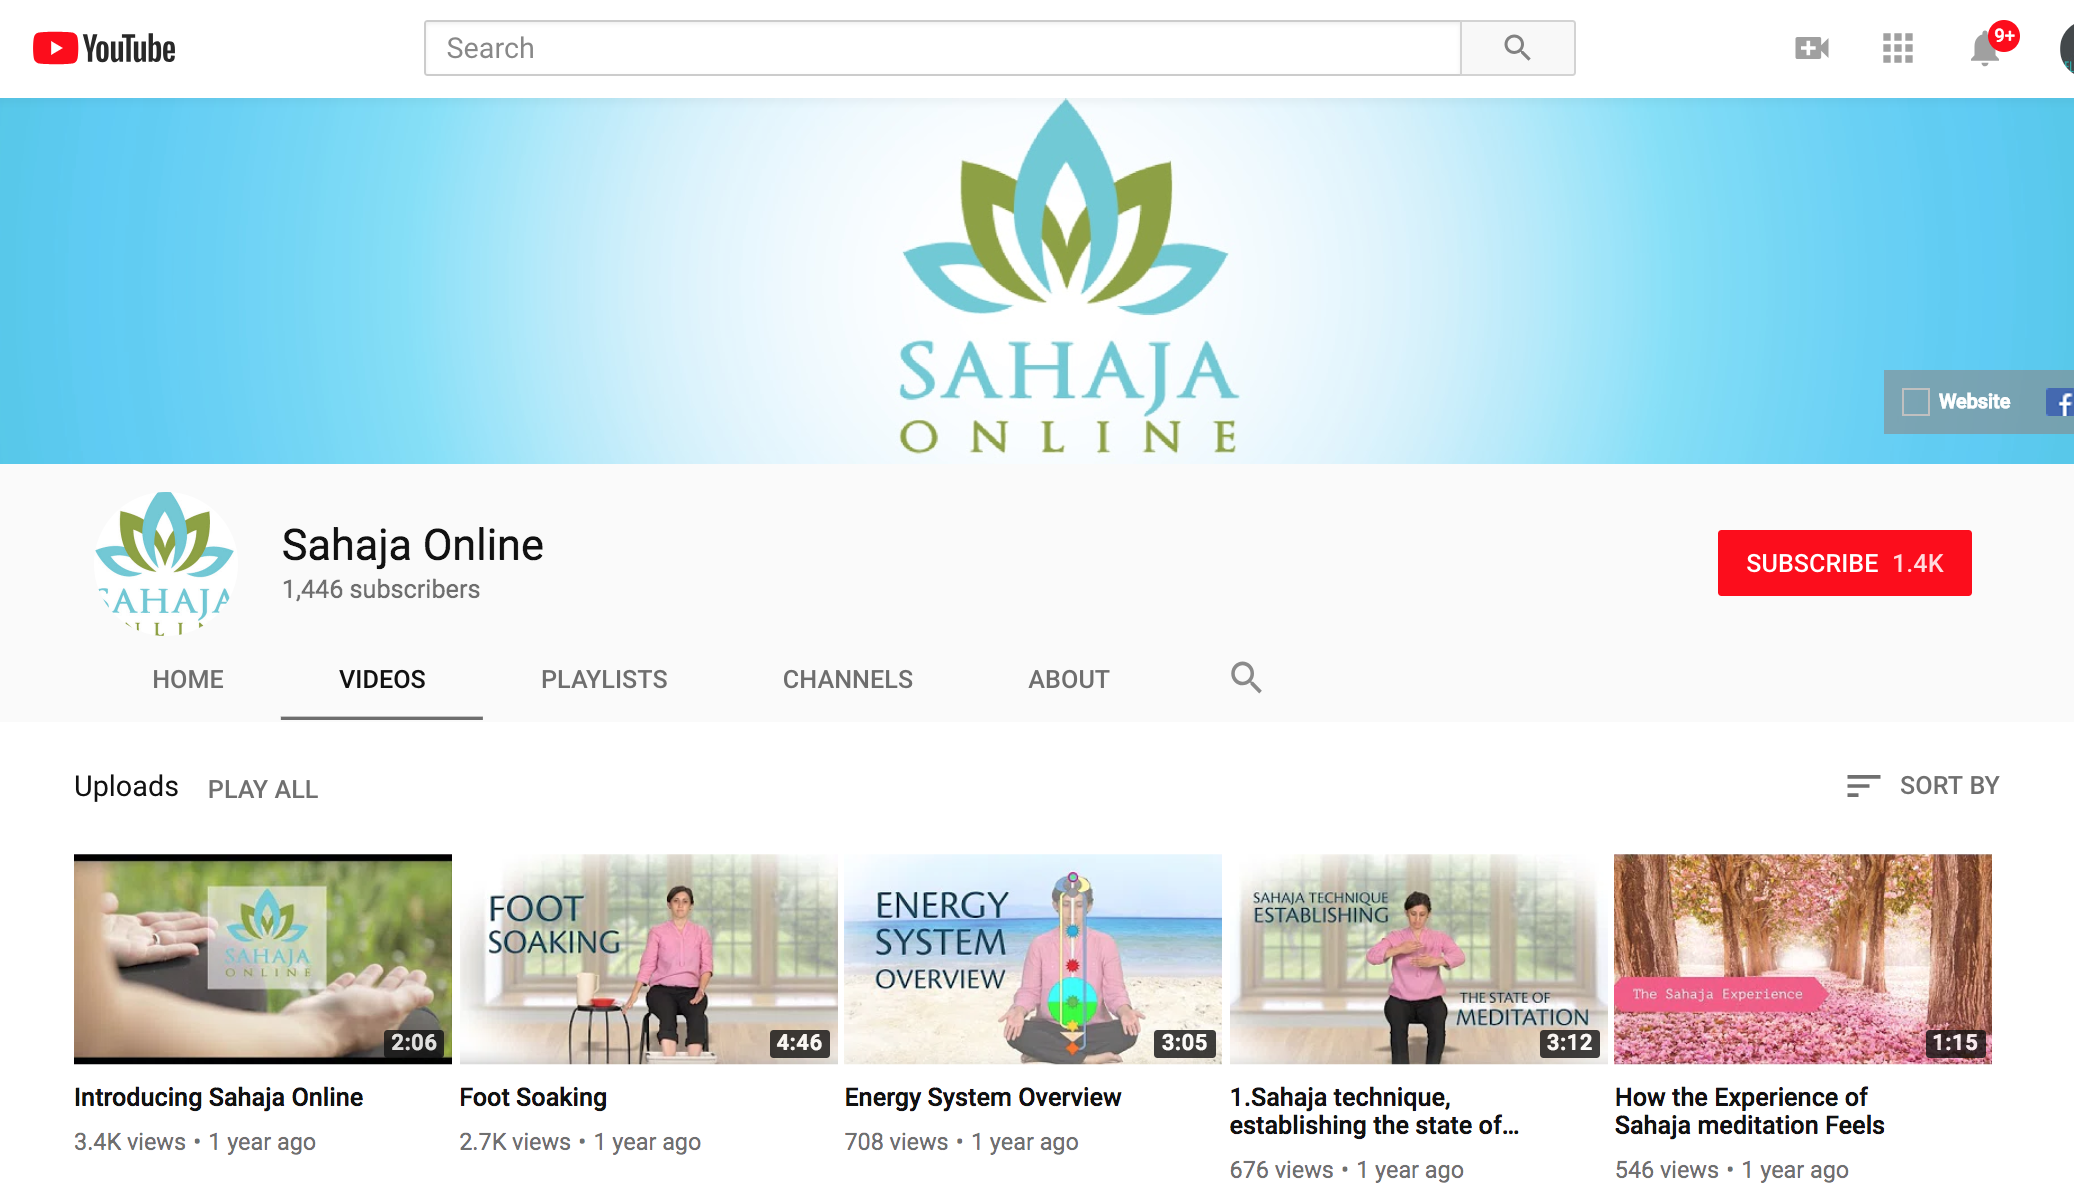 Sahaja Online - Channel Setup & Design   * YouTube Channel Setup / Strategy   * Thumbnail Design Creations   * Weekly Video Uploads   * Sharing on Facebook / Instagram / Pinterest